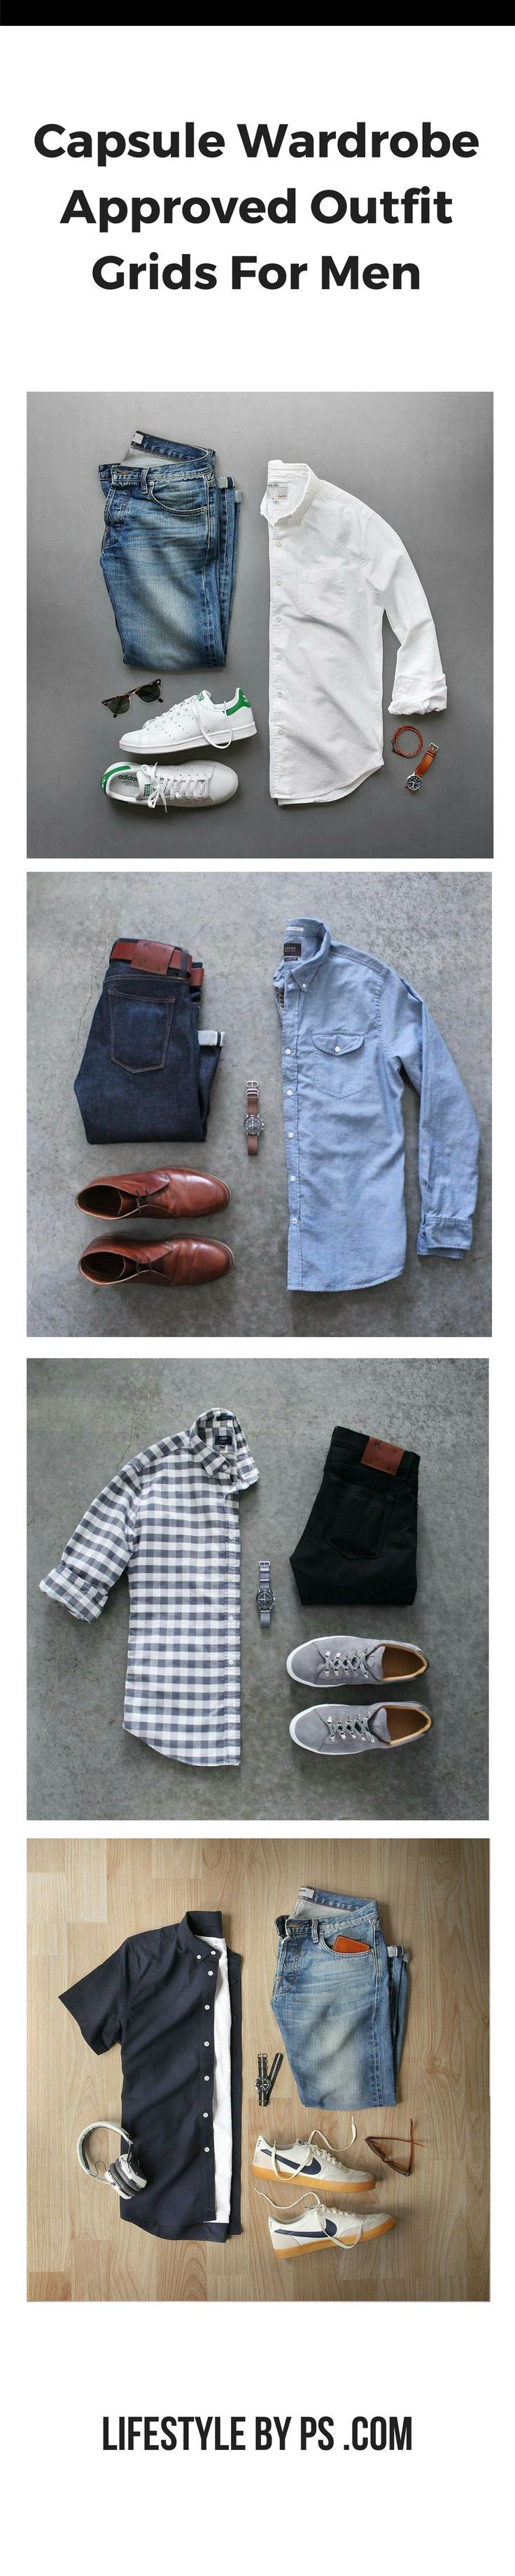 Capsule Wardrobe Outfit Grids For Men. #mens #fashion - Tap the link to see the newly released collections for amazing beach jewelry! :D